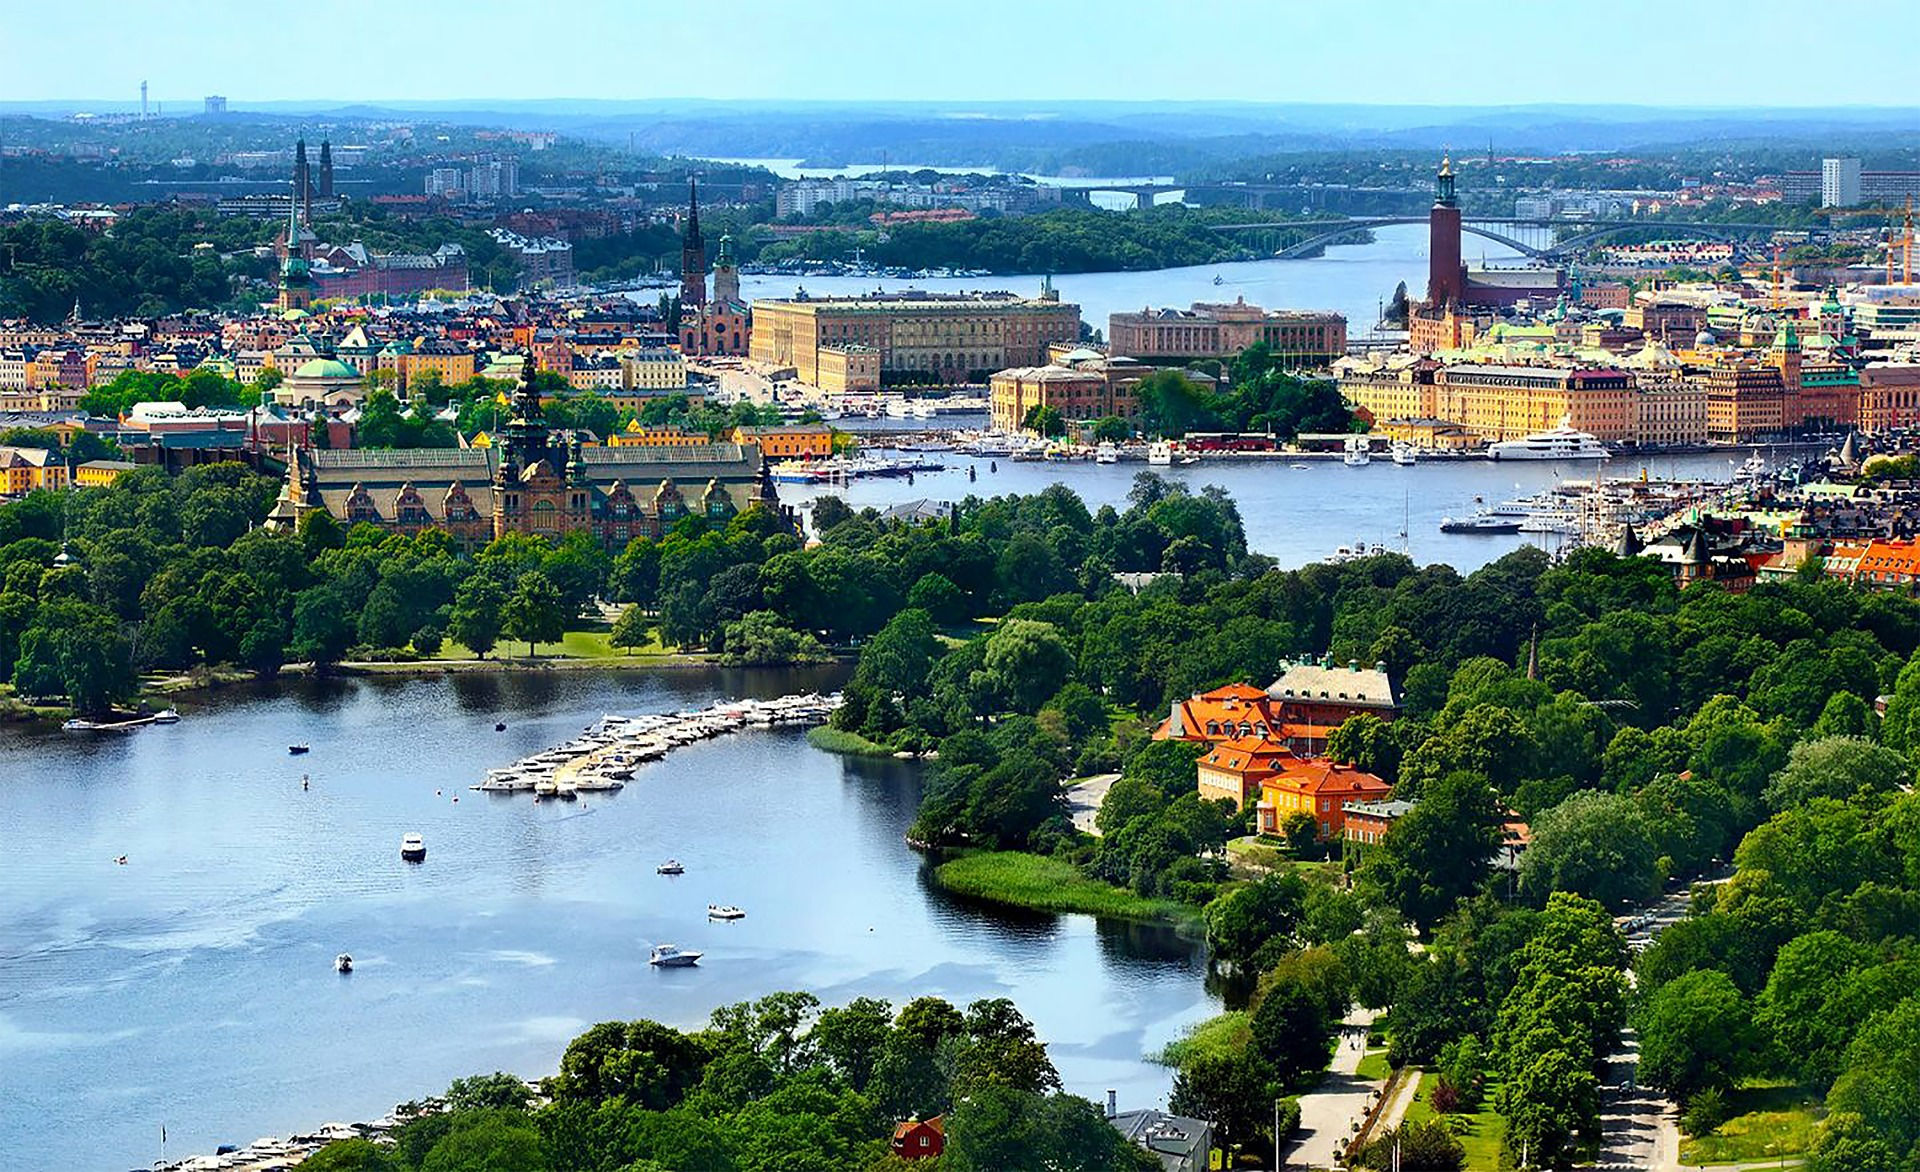 Aerial view of Stockholm. You see neighborhoods such as the Royal Djurgården, the Old Town, Kungsholmen and Södermalm.